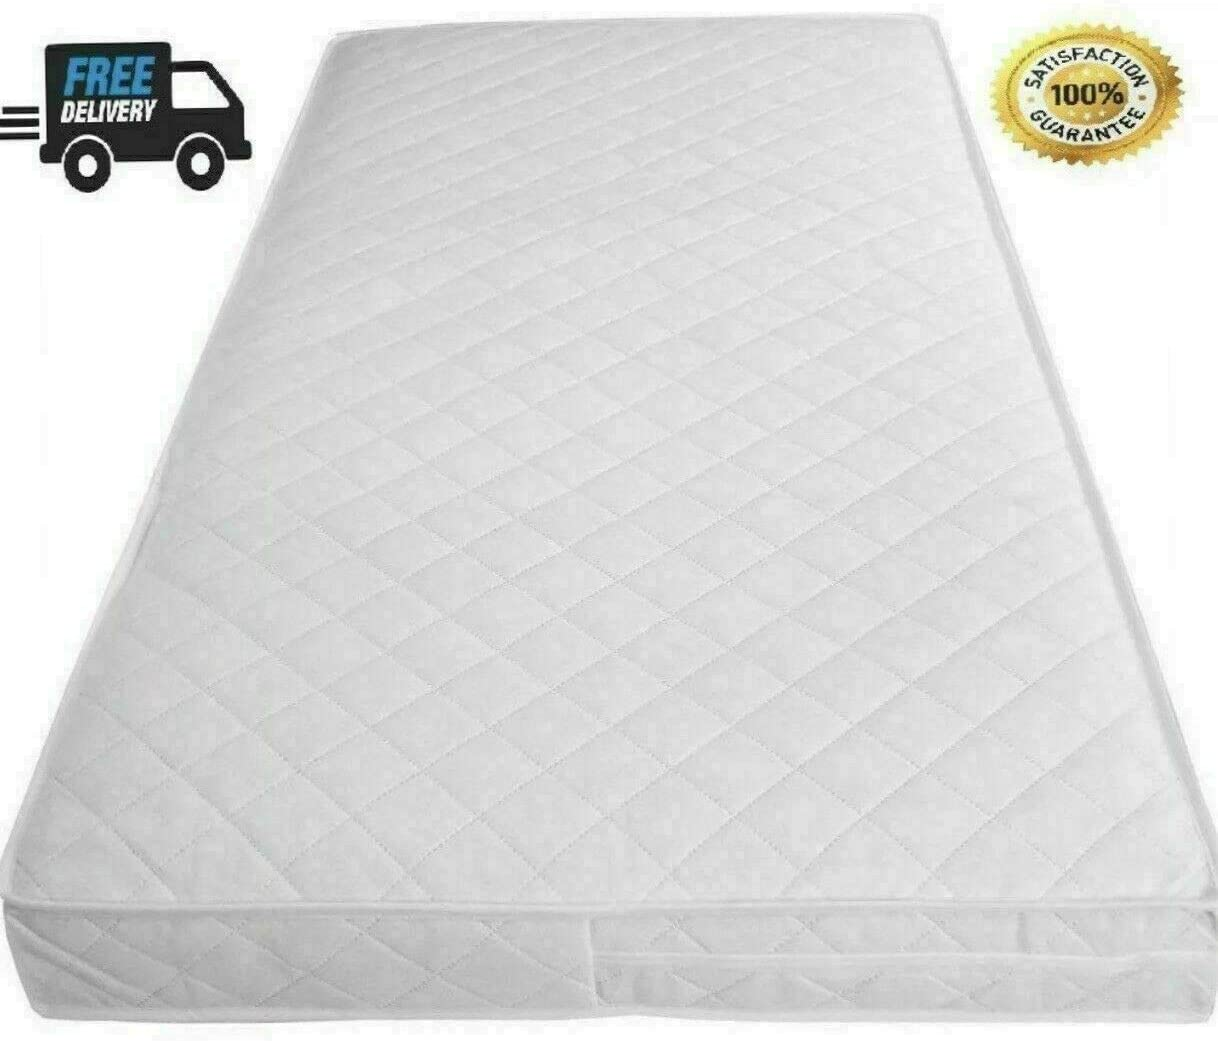 Made in England 120 x 60 x 13 Soft Cot Mattress 160 x 80 // 160 x 70 Guaranteed 24-48 Hour UK Mainland Postage